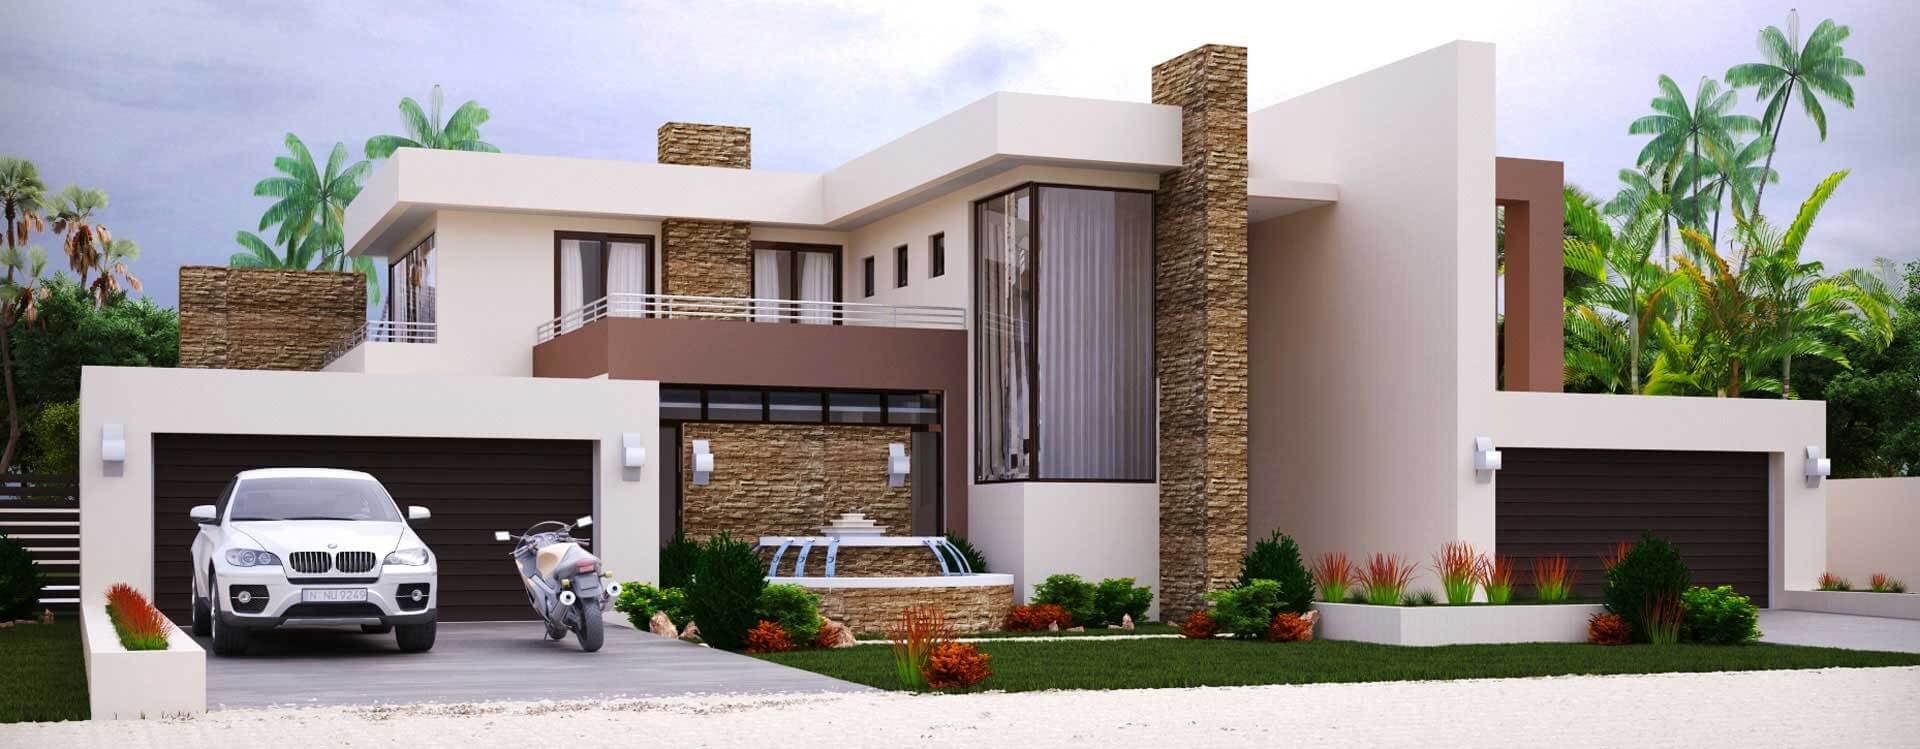 Awesome House Plans Home Designs Floor Plans Largest Home Design Picture Inspirations Pitcheantrous